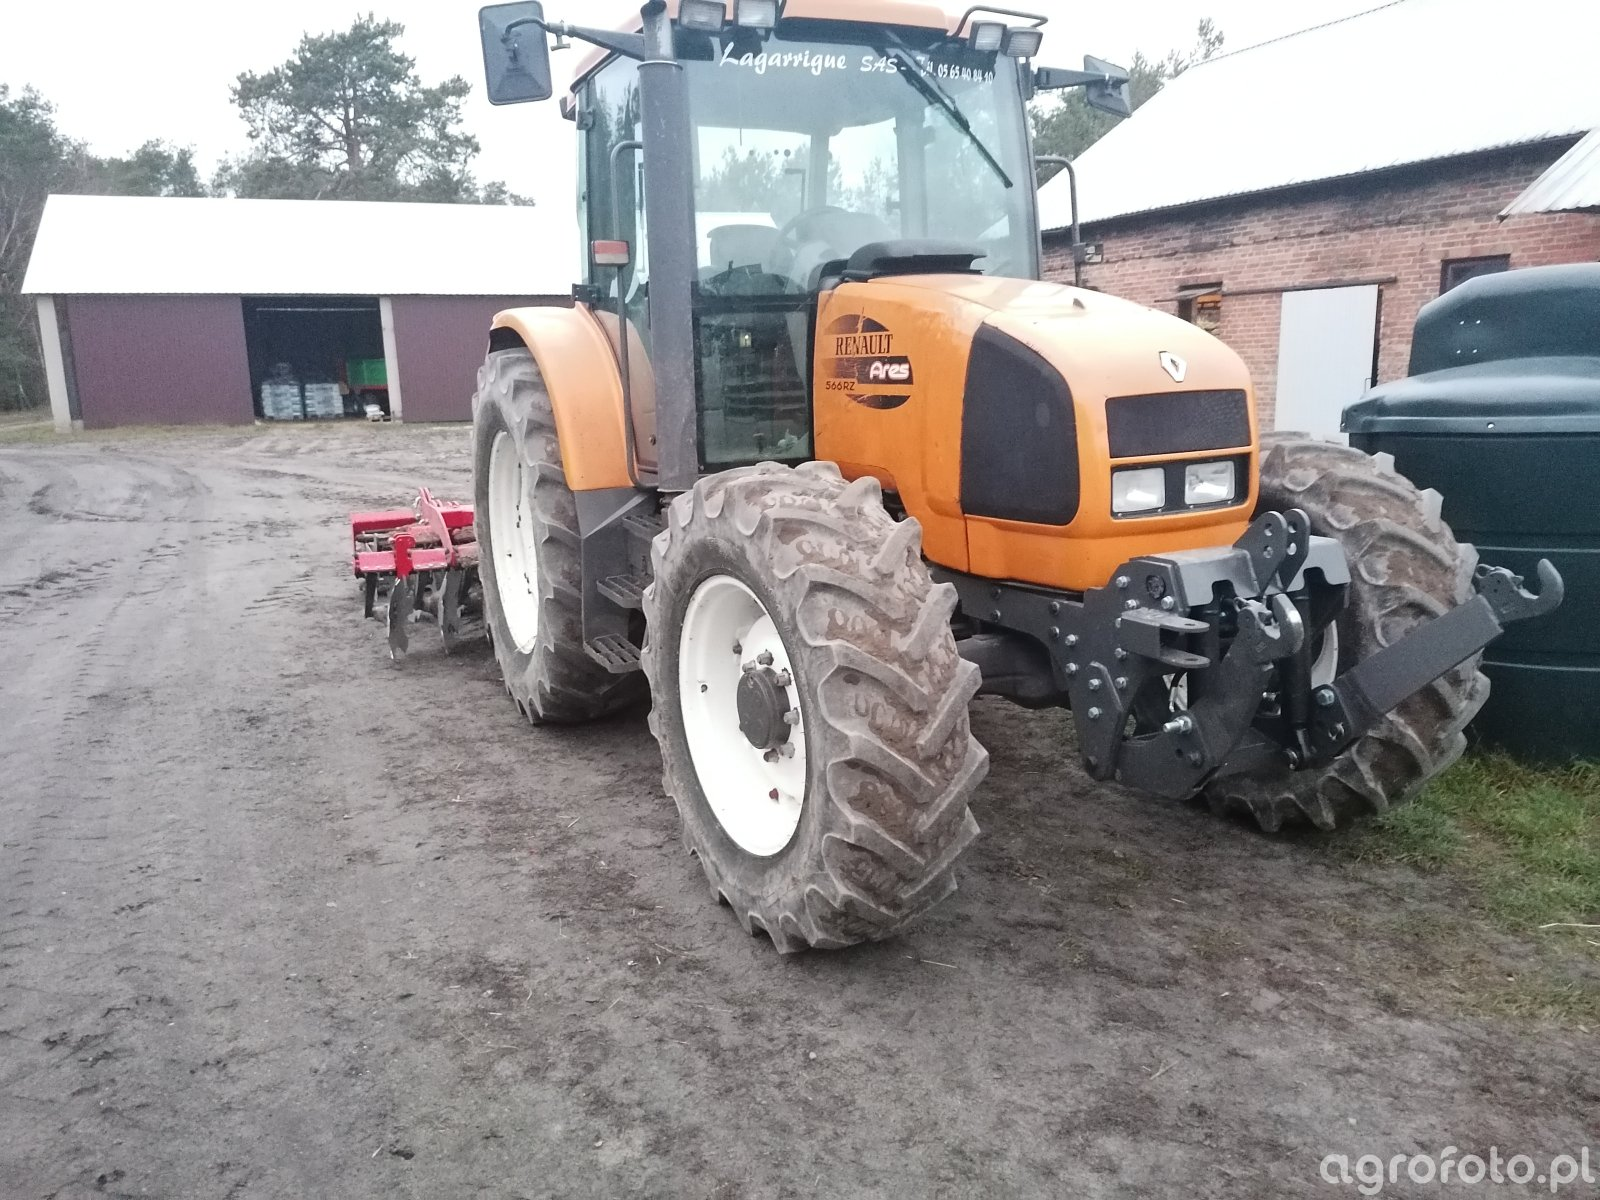 Renault Ares i agro-system